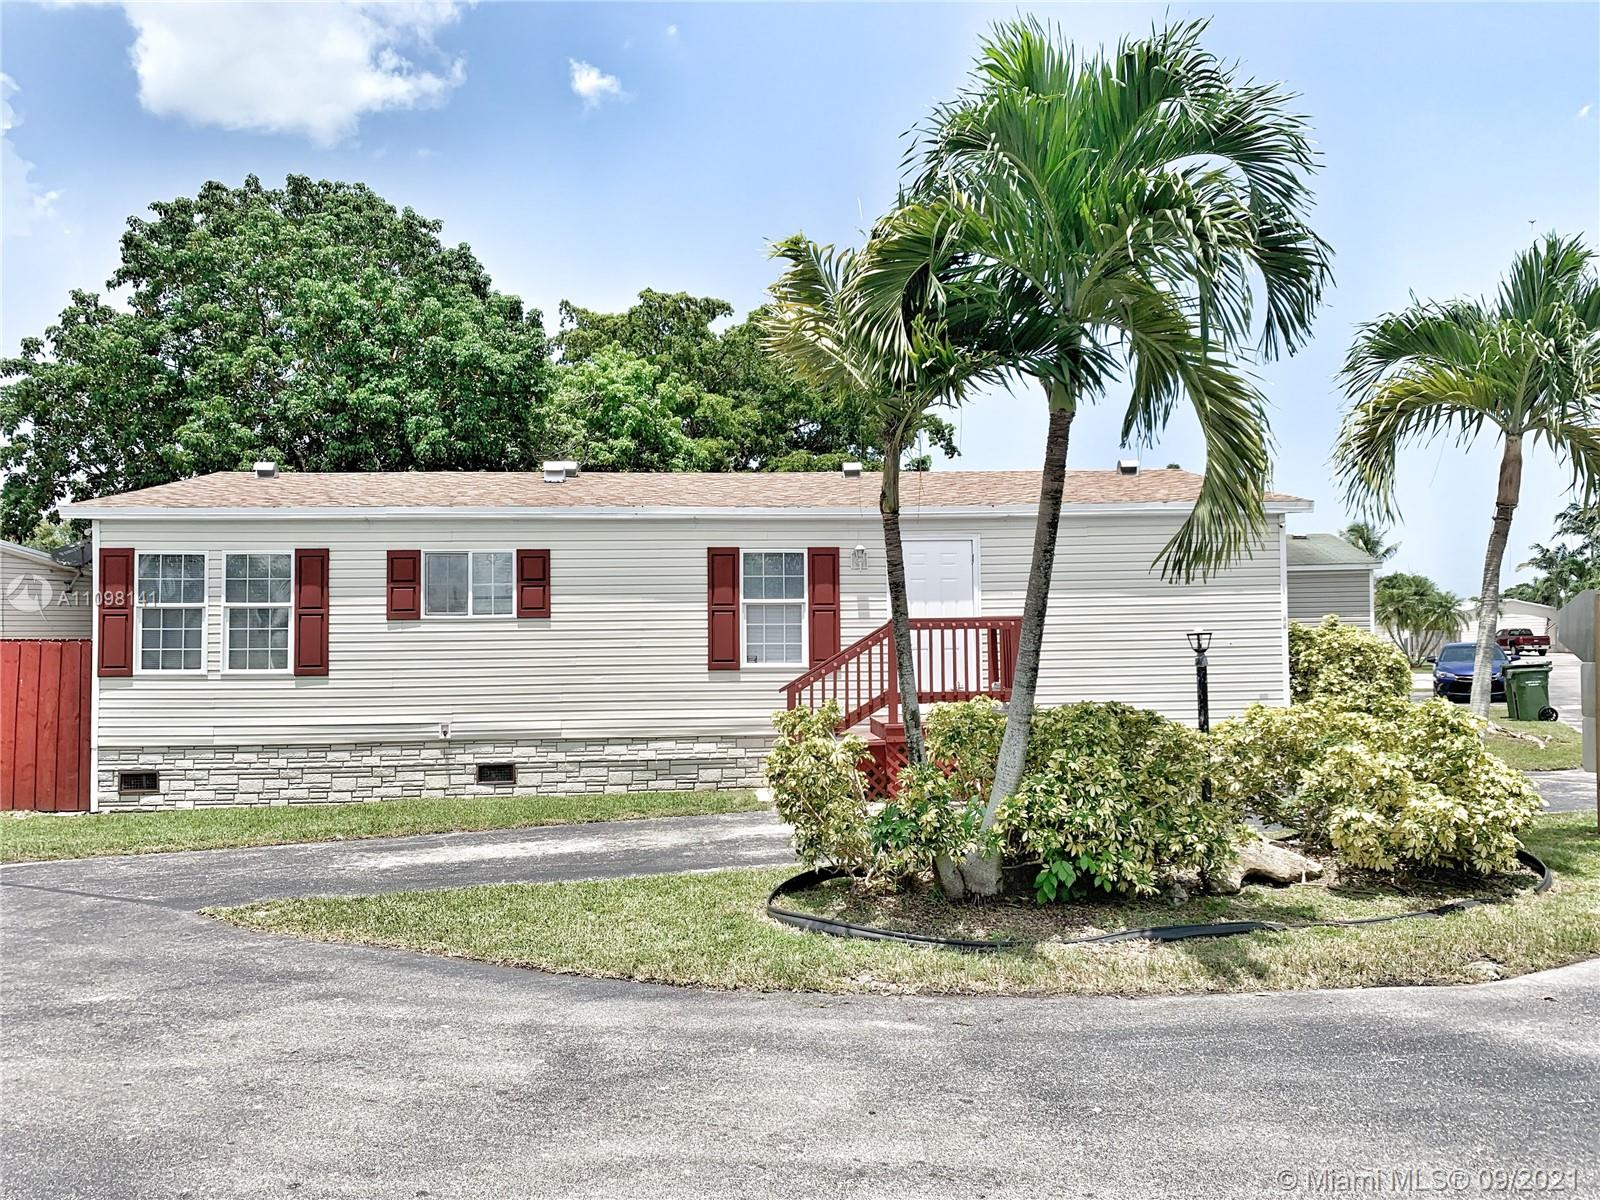 220 NE 12th Ave #89, Homestead, Florida 33030, 2 Bedrooms Bedrooms, ,2 BathroomsBathrooms,Residential,For Sale,12th Ave #89,A11098141